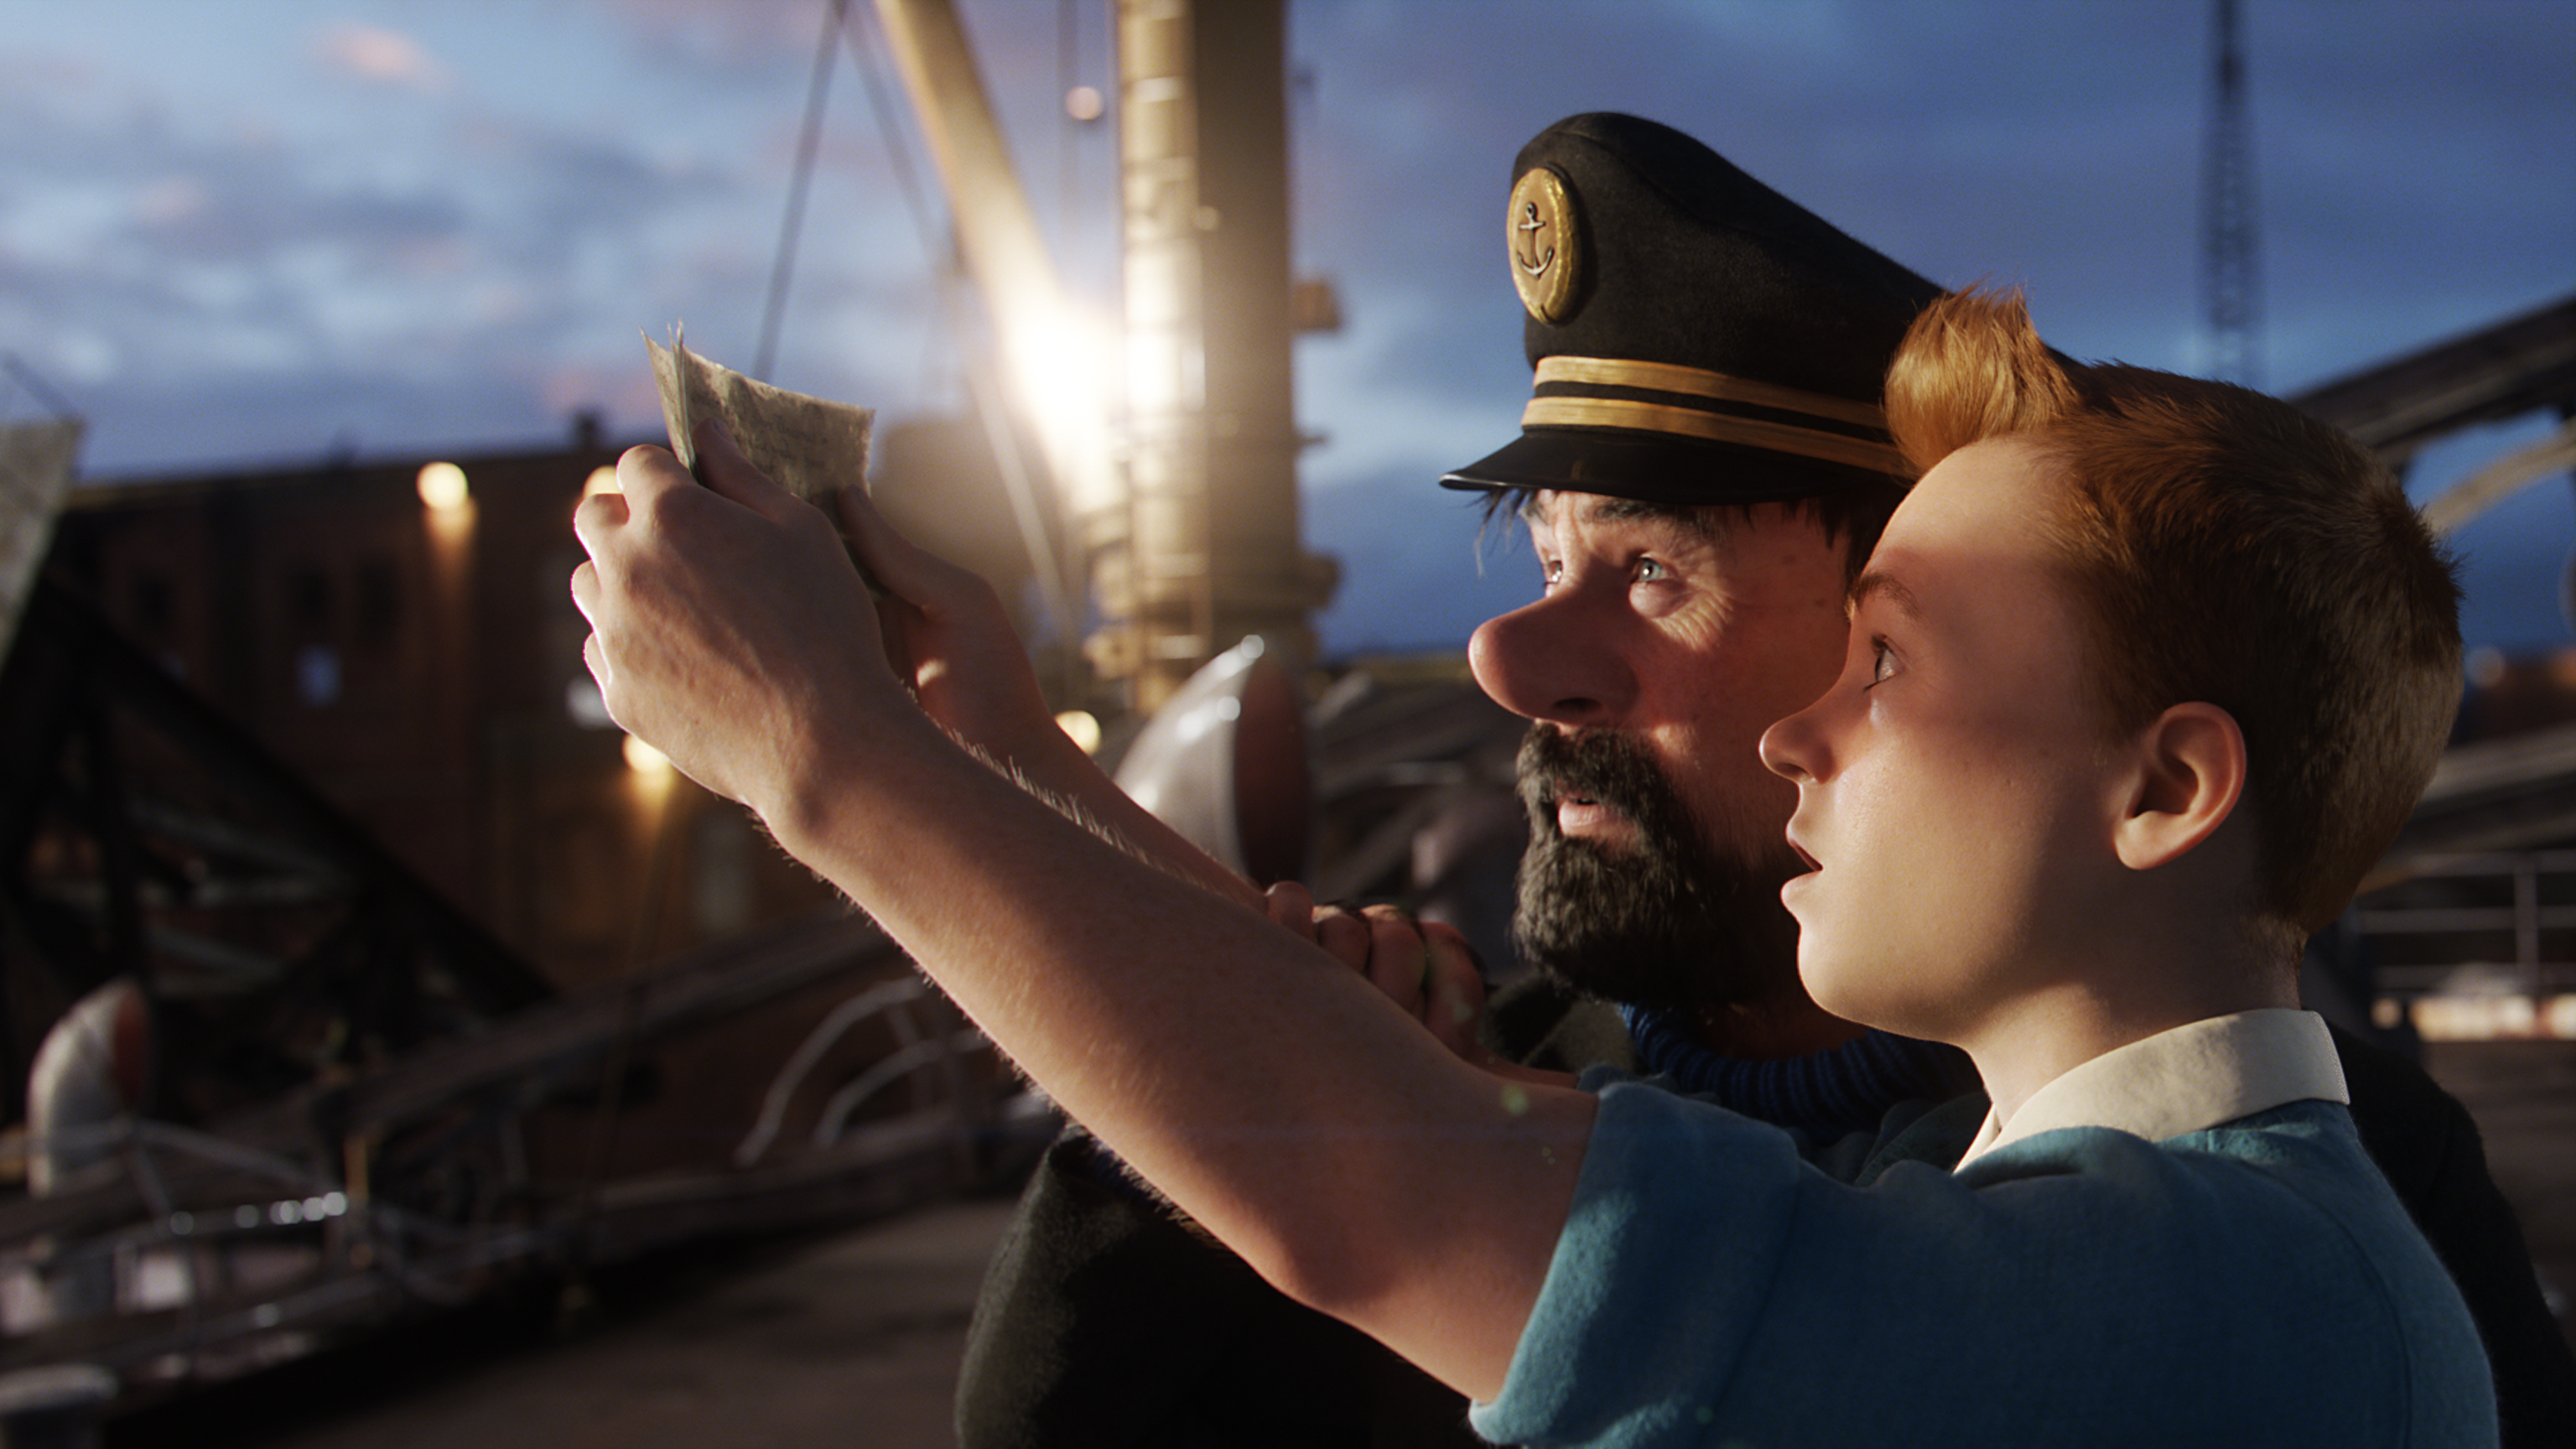 'The Adventures of Tintin' (2011)